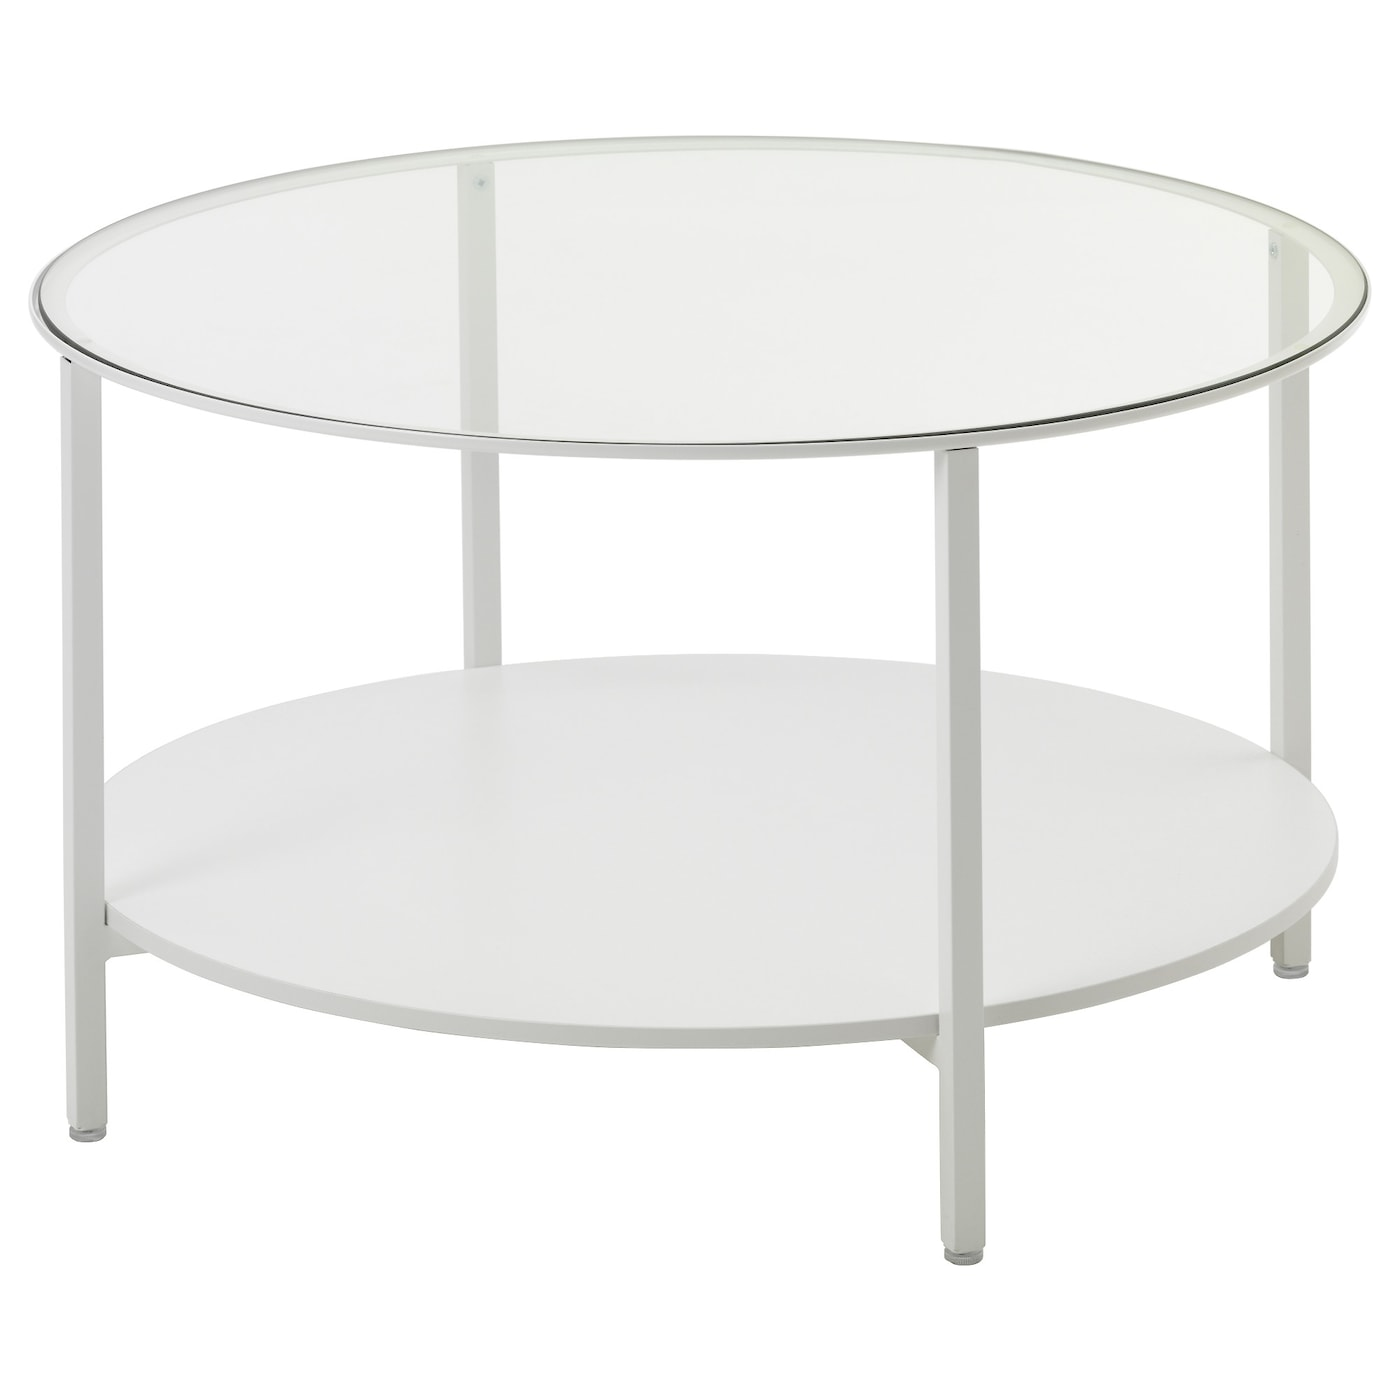 Vittsj Coffee Table White Glass 75 Cm Ikea